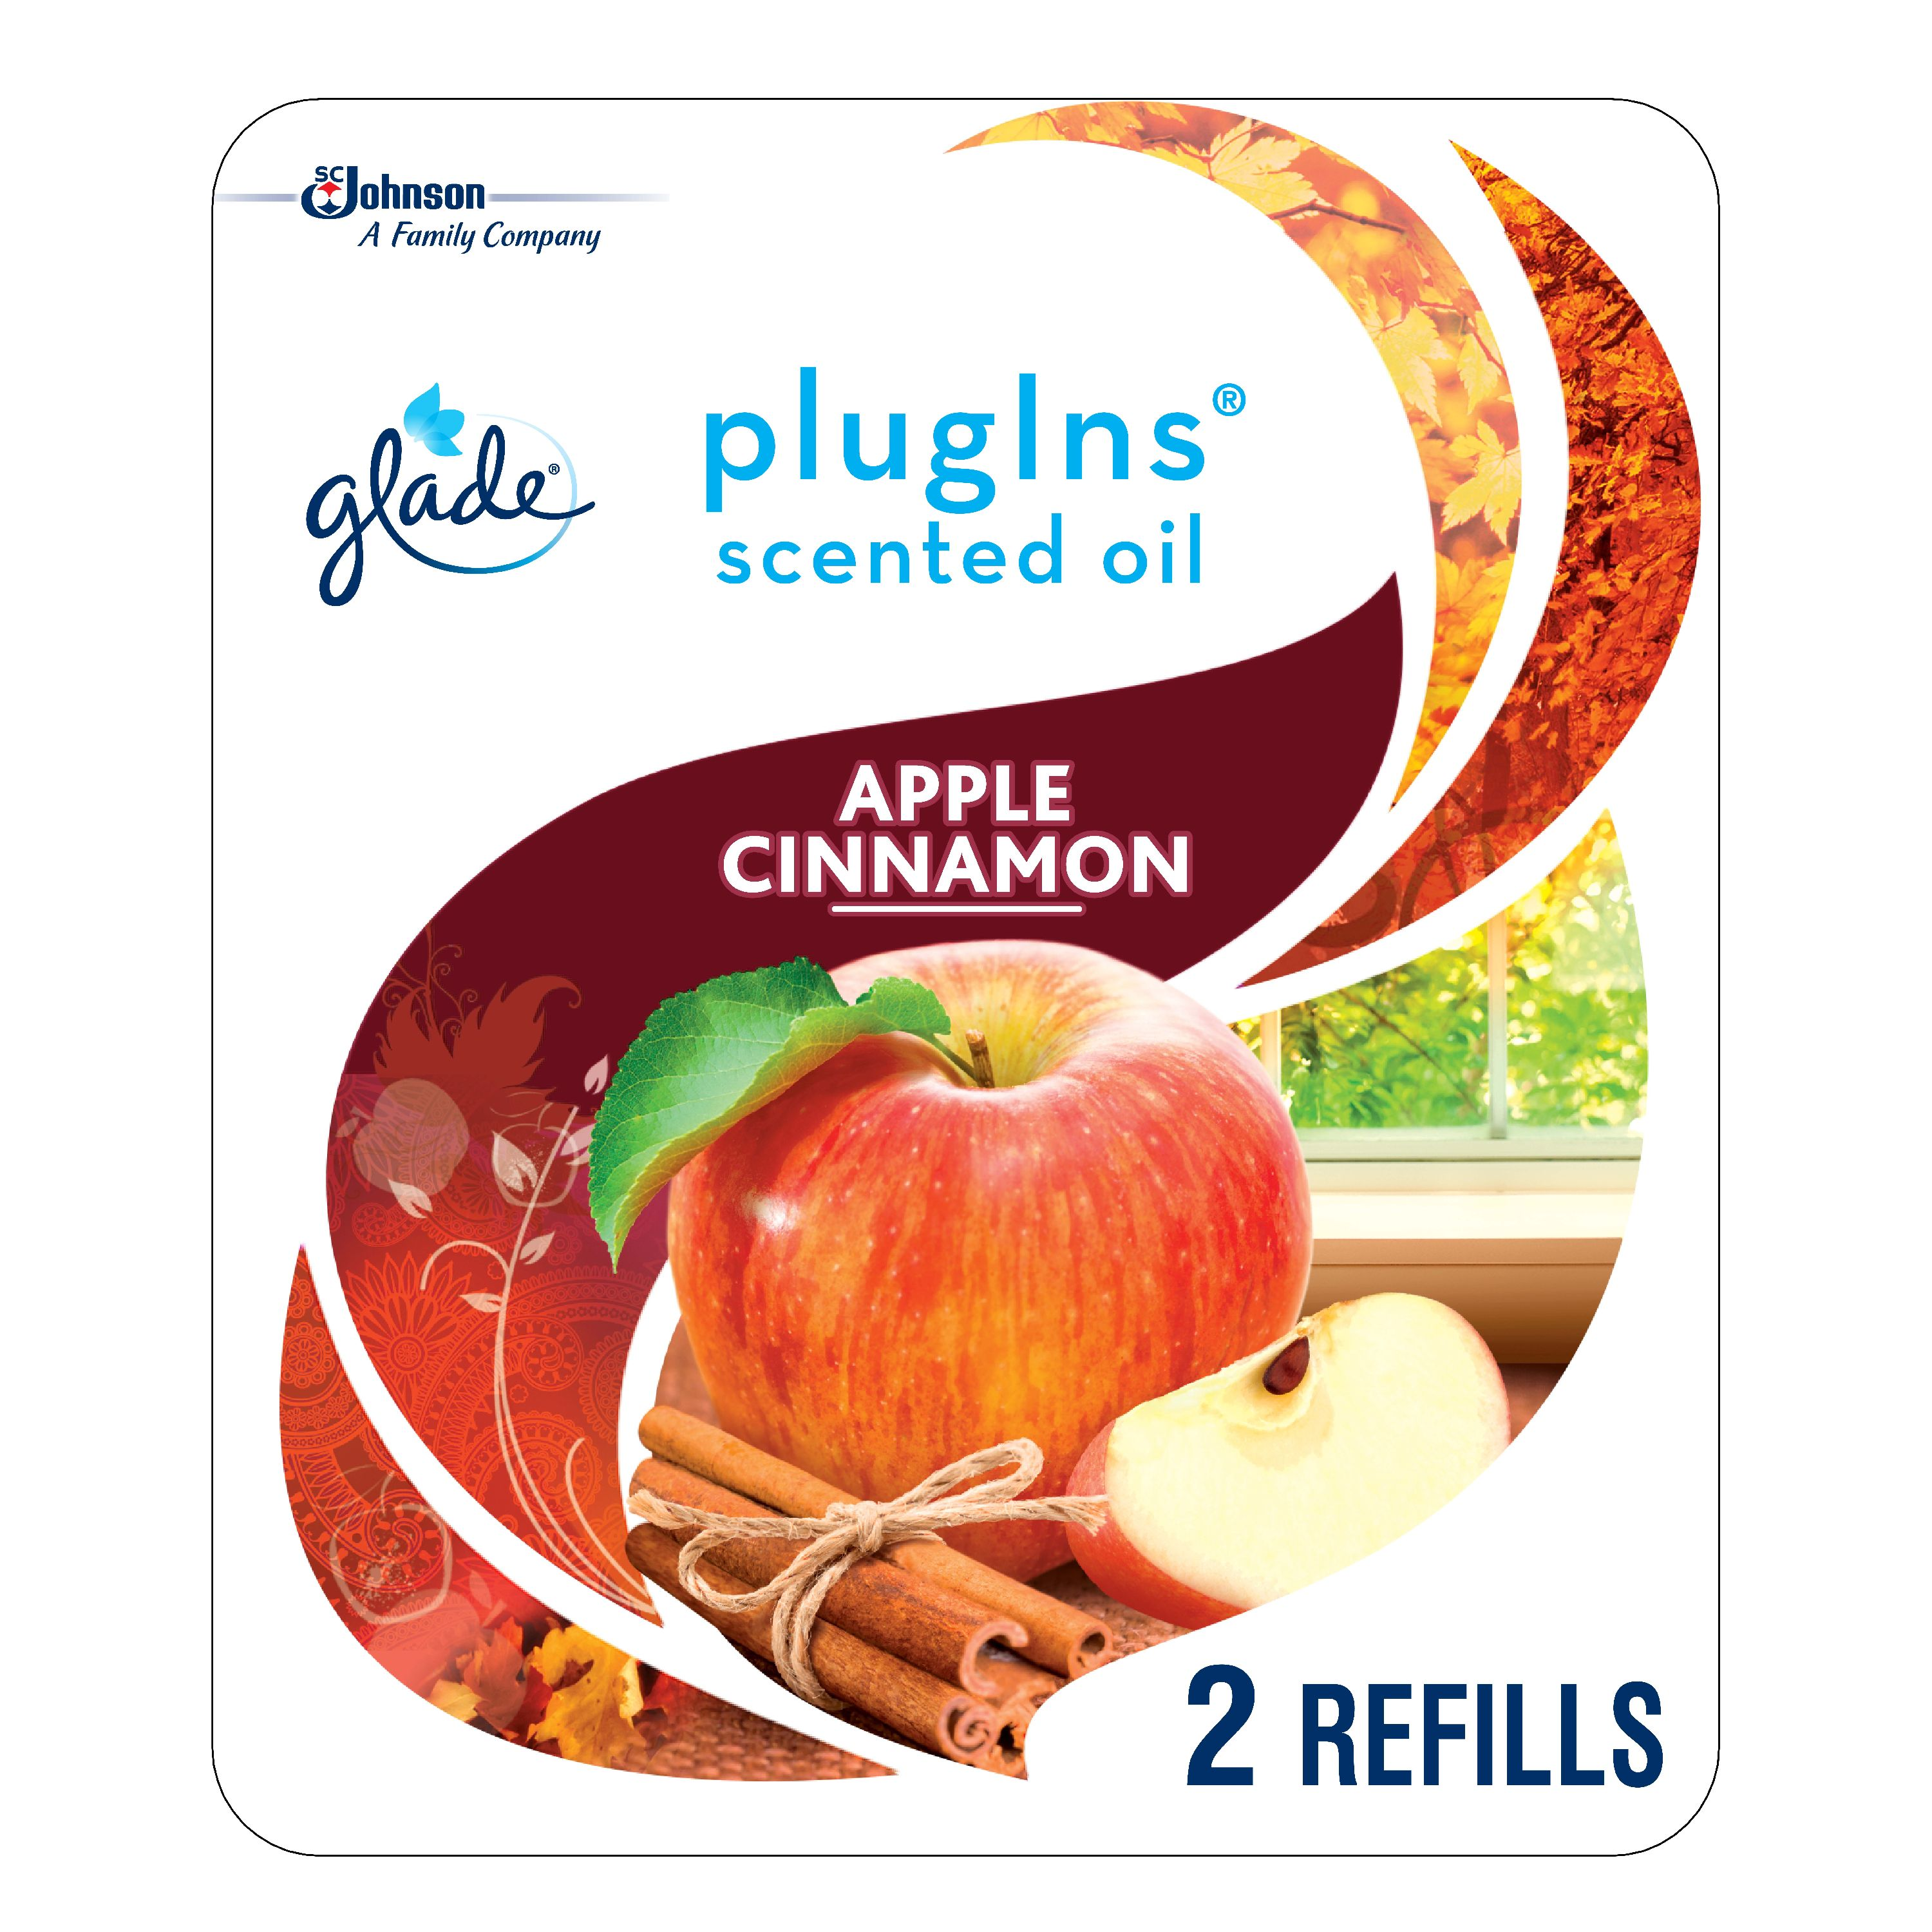 Glade PlugIns Scented Oil Refill Apple Cinnamon, Essential Oil Infused Wall Plug In, Up to 50 Days of Continuous Fragrance, 1.34 oz, Pack of 2